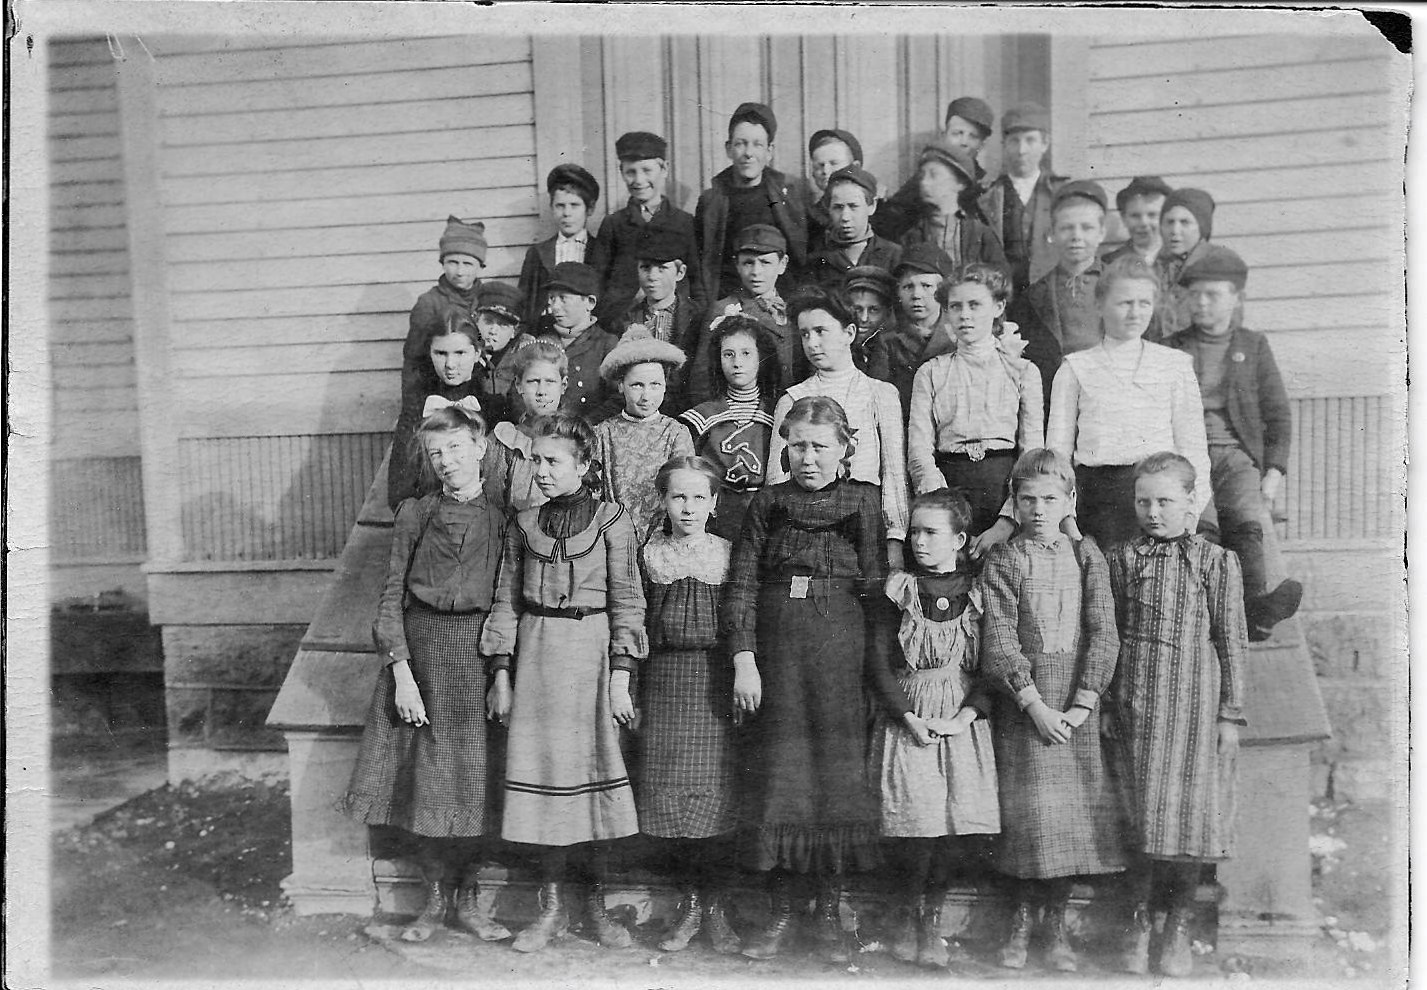 school days are the golden days For an authentic alaskan celebration, head to fairbanks in the third week of july that's when residents cut loose in honor of their gold rush history, during a five-day festival they call golden days.